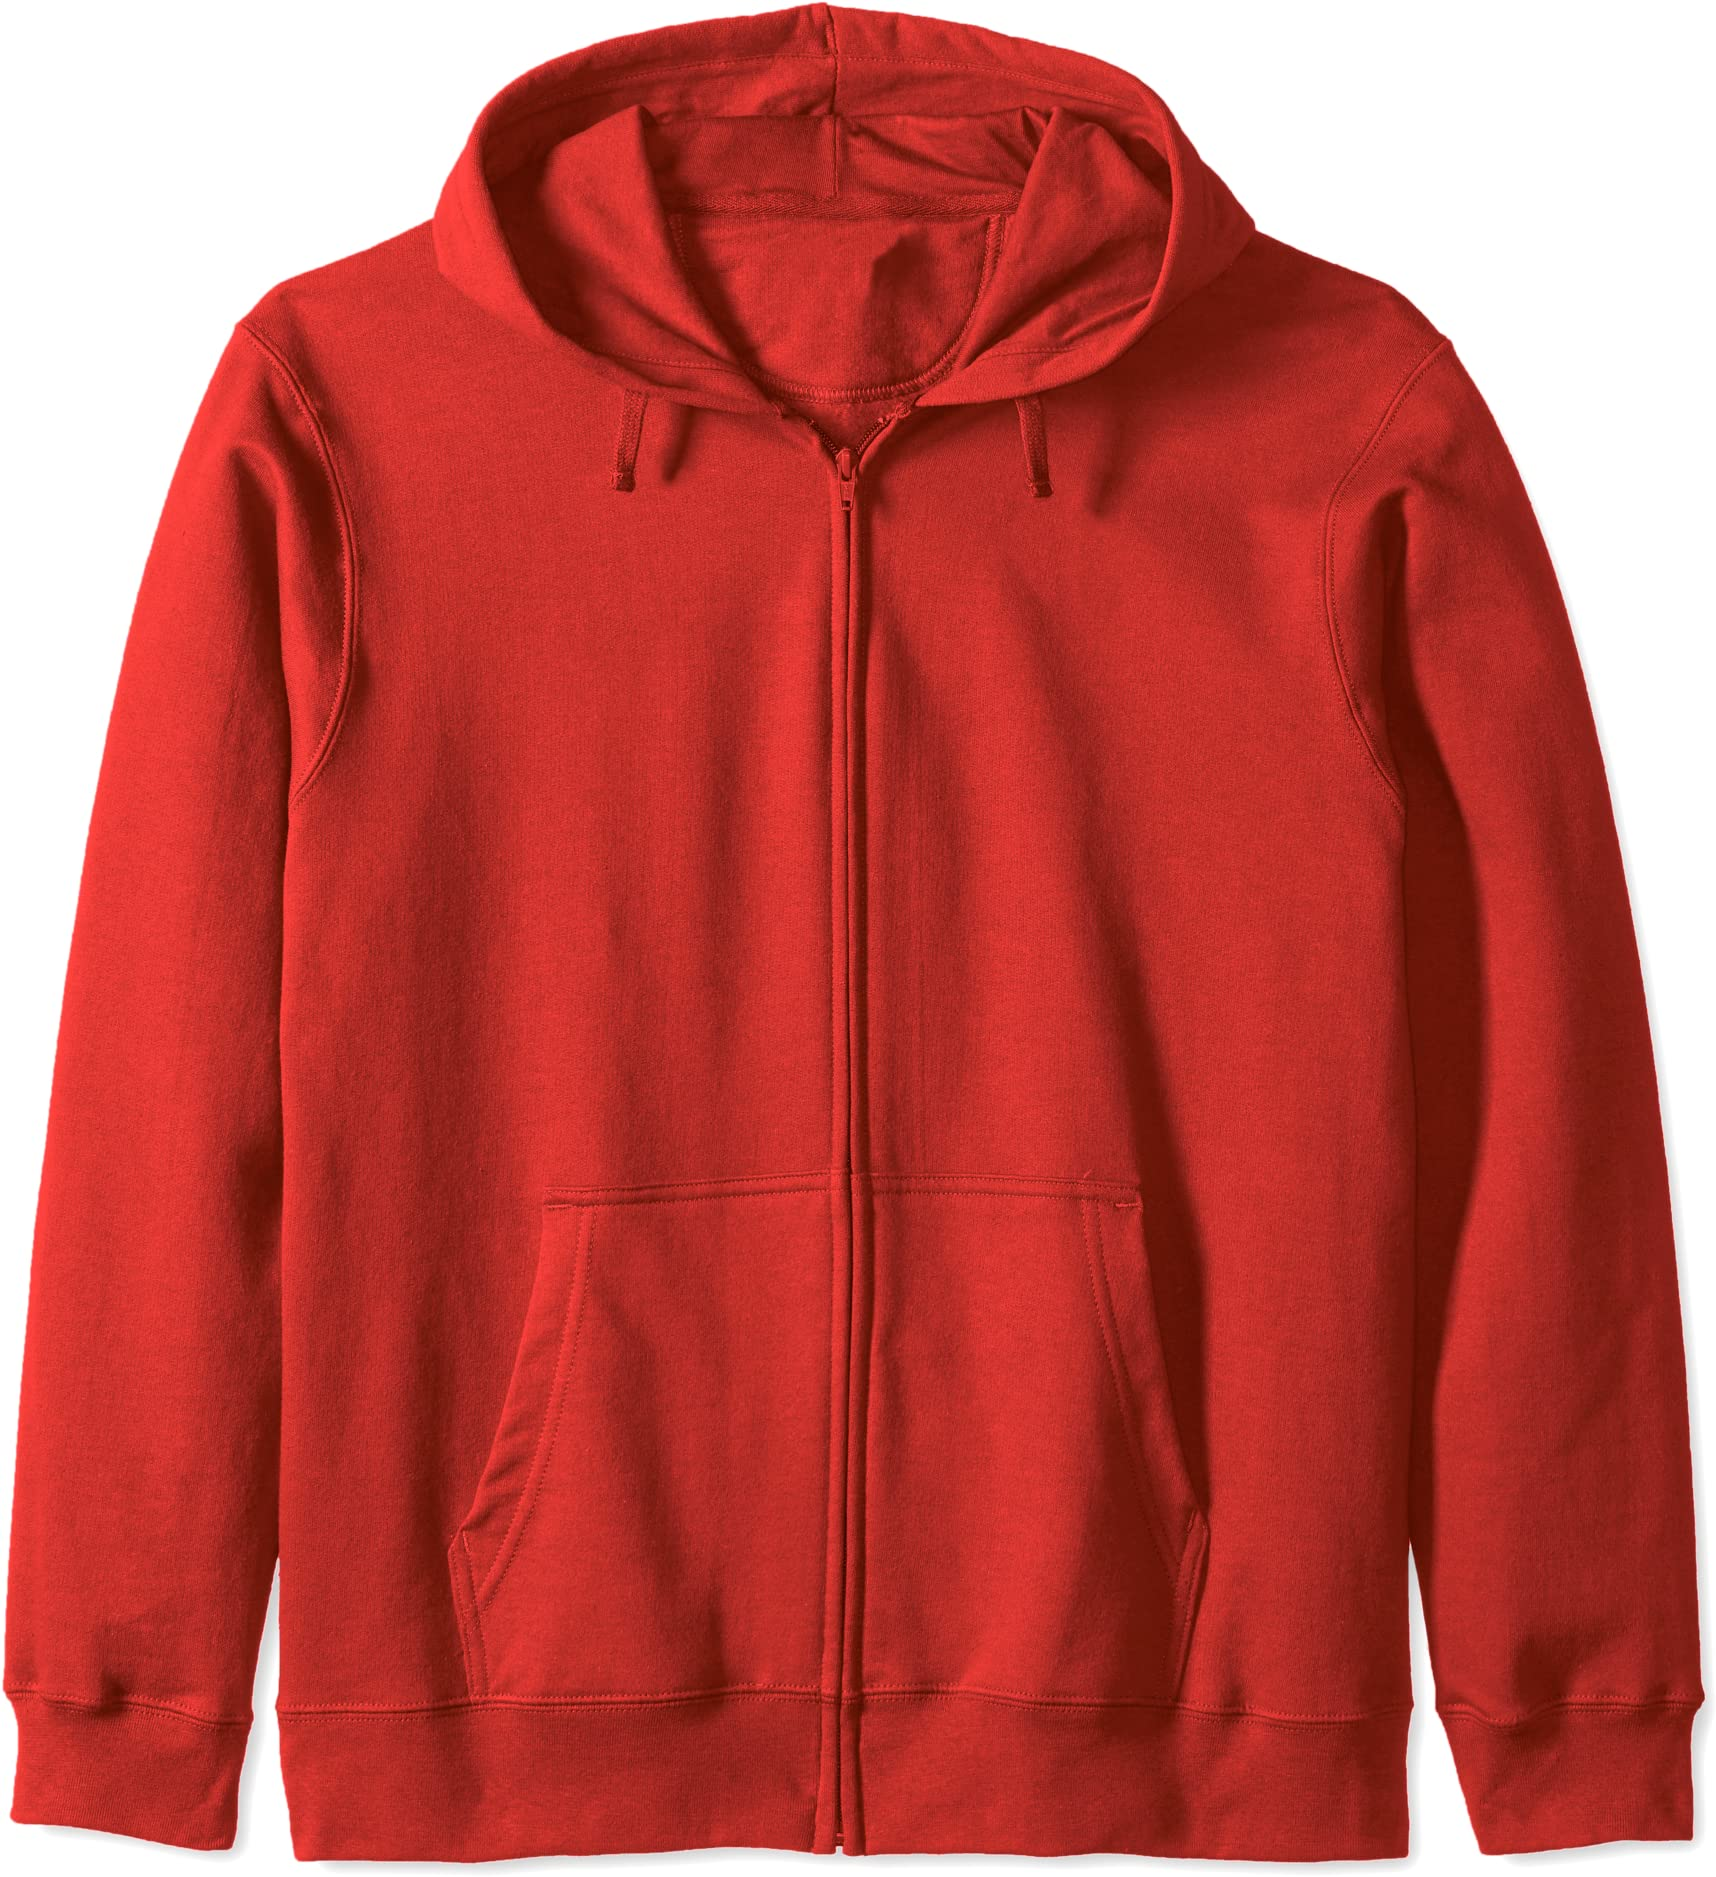 MHBGMYES Lightweight Mans Jacket with Hood Long Sleeved Zippered Outwear